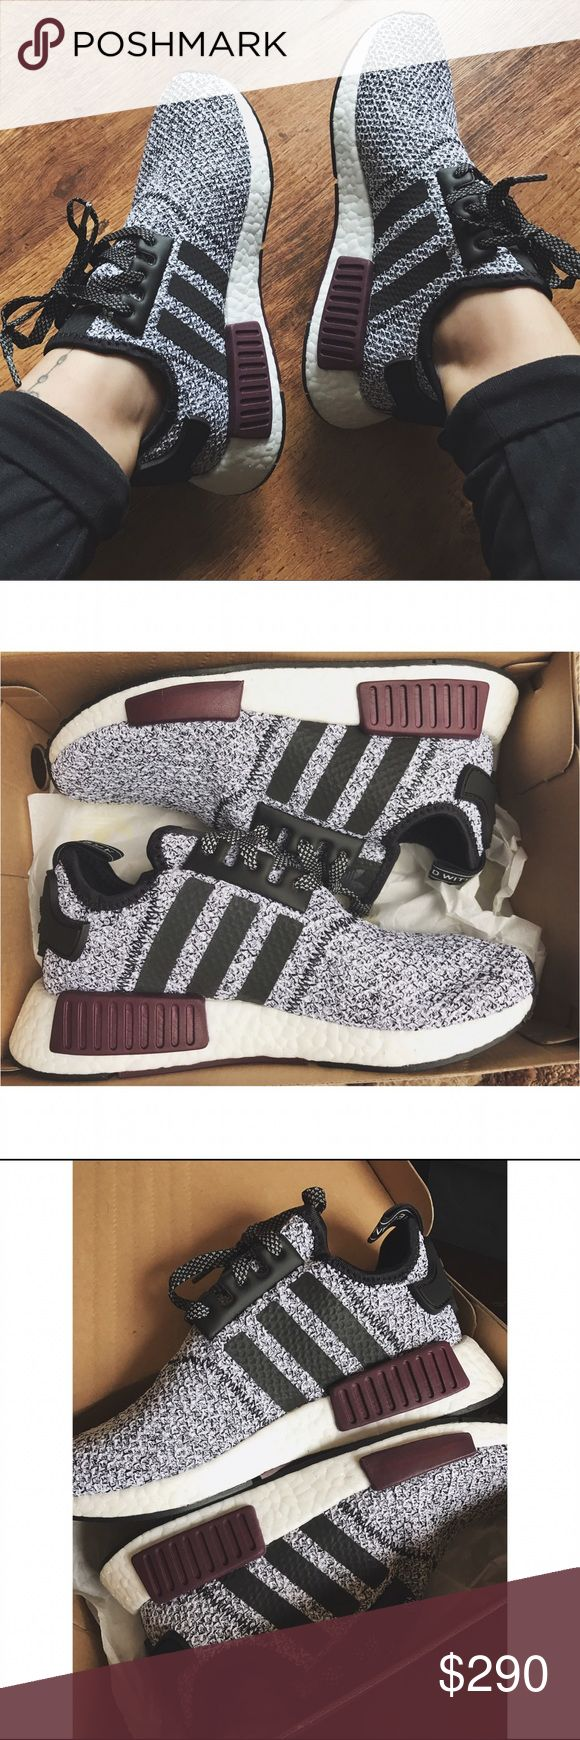 Adidas NMD R1 Champs Exclusive Youth 5= womens 6.5. Fit me and Im a 7! These run a half size large! Brand new, with box. Price firm through Poshmark. Adidas Shoes Athletic Shoes Adidas women shoes -